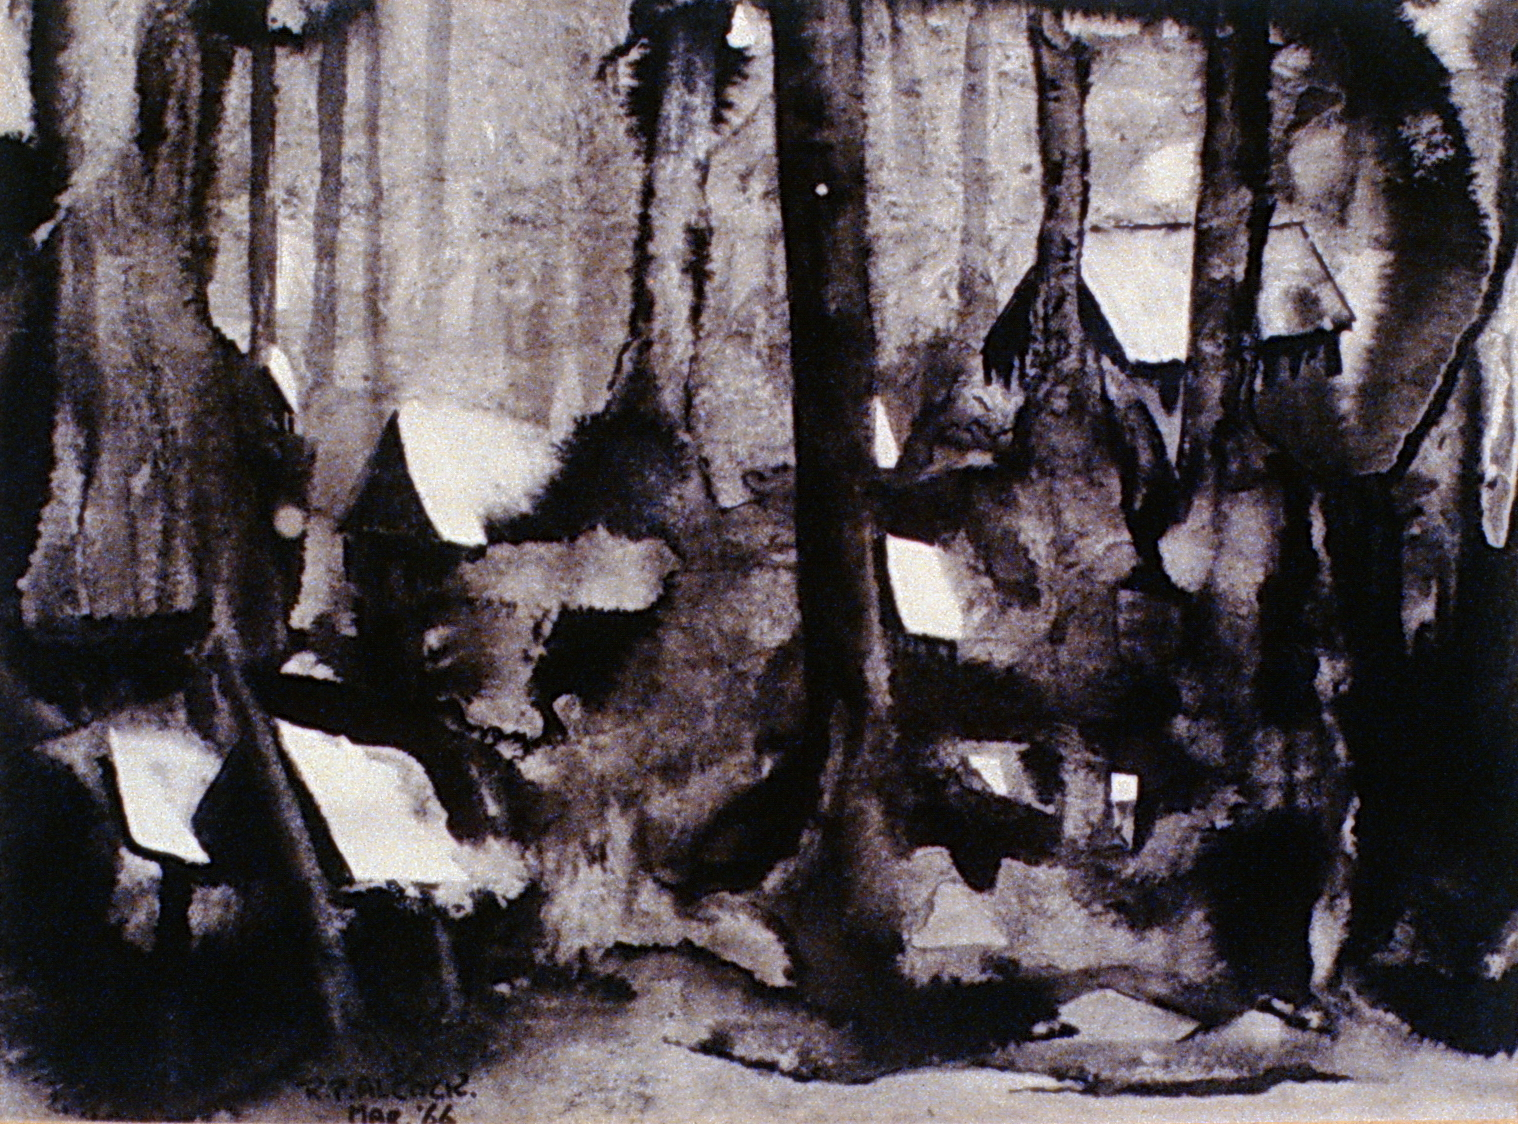 Lumber Camp , 1966, Mac Alcock, ink wash, 23x16.5 cm, 1972.01.01, gift of the family of Mac Alcock